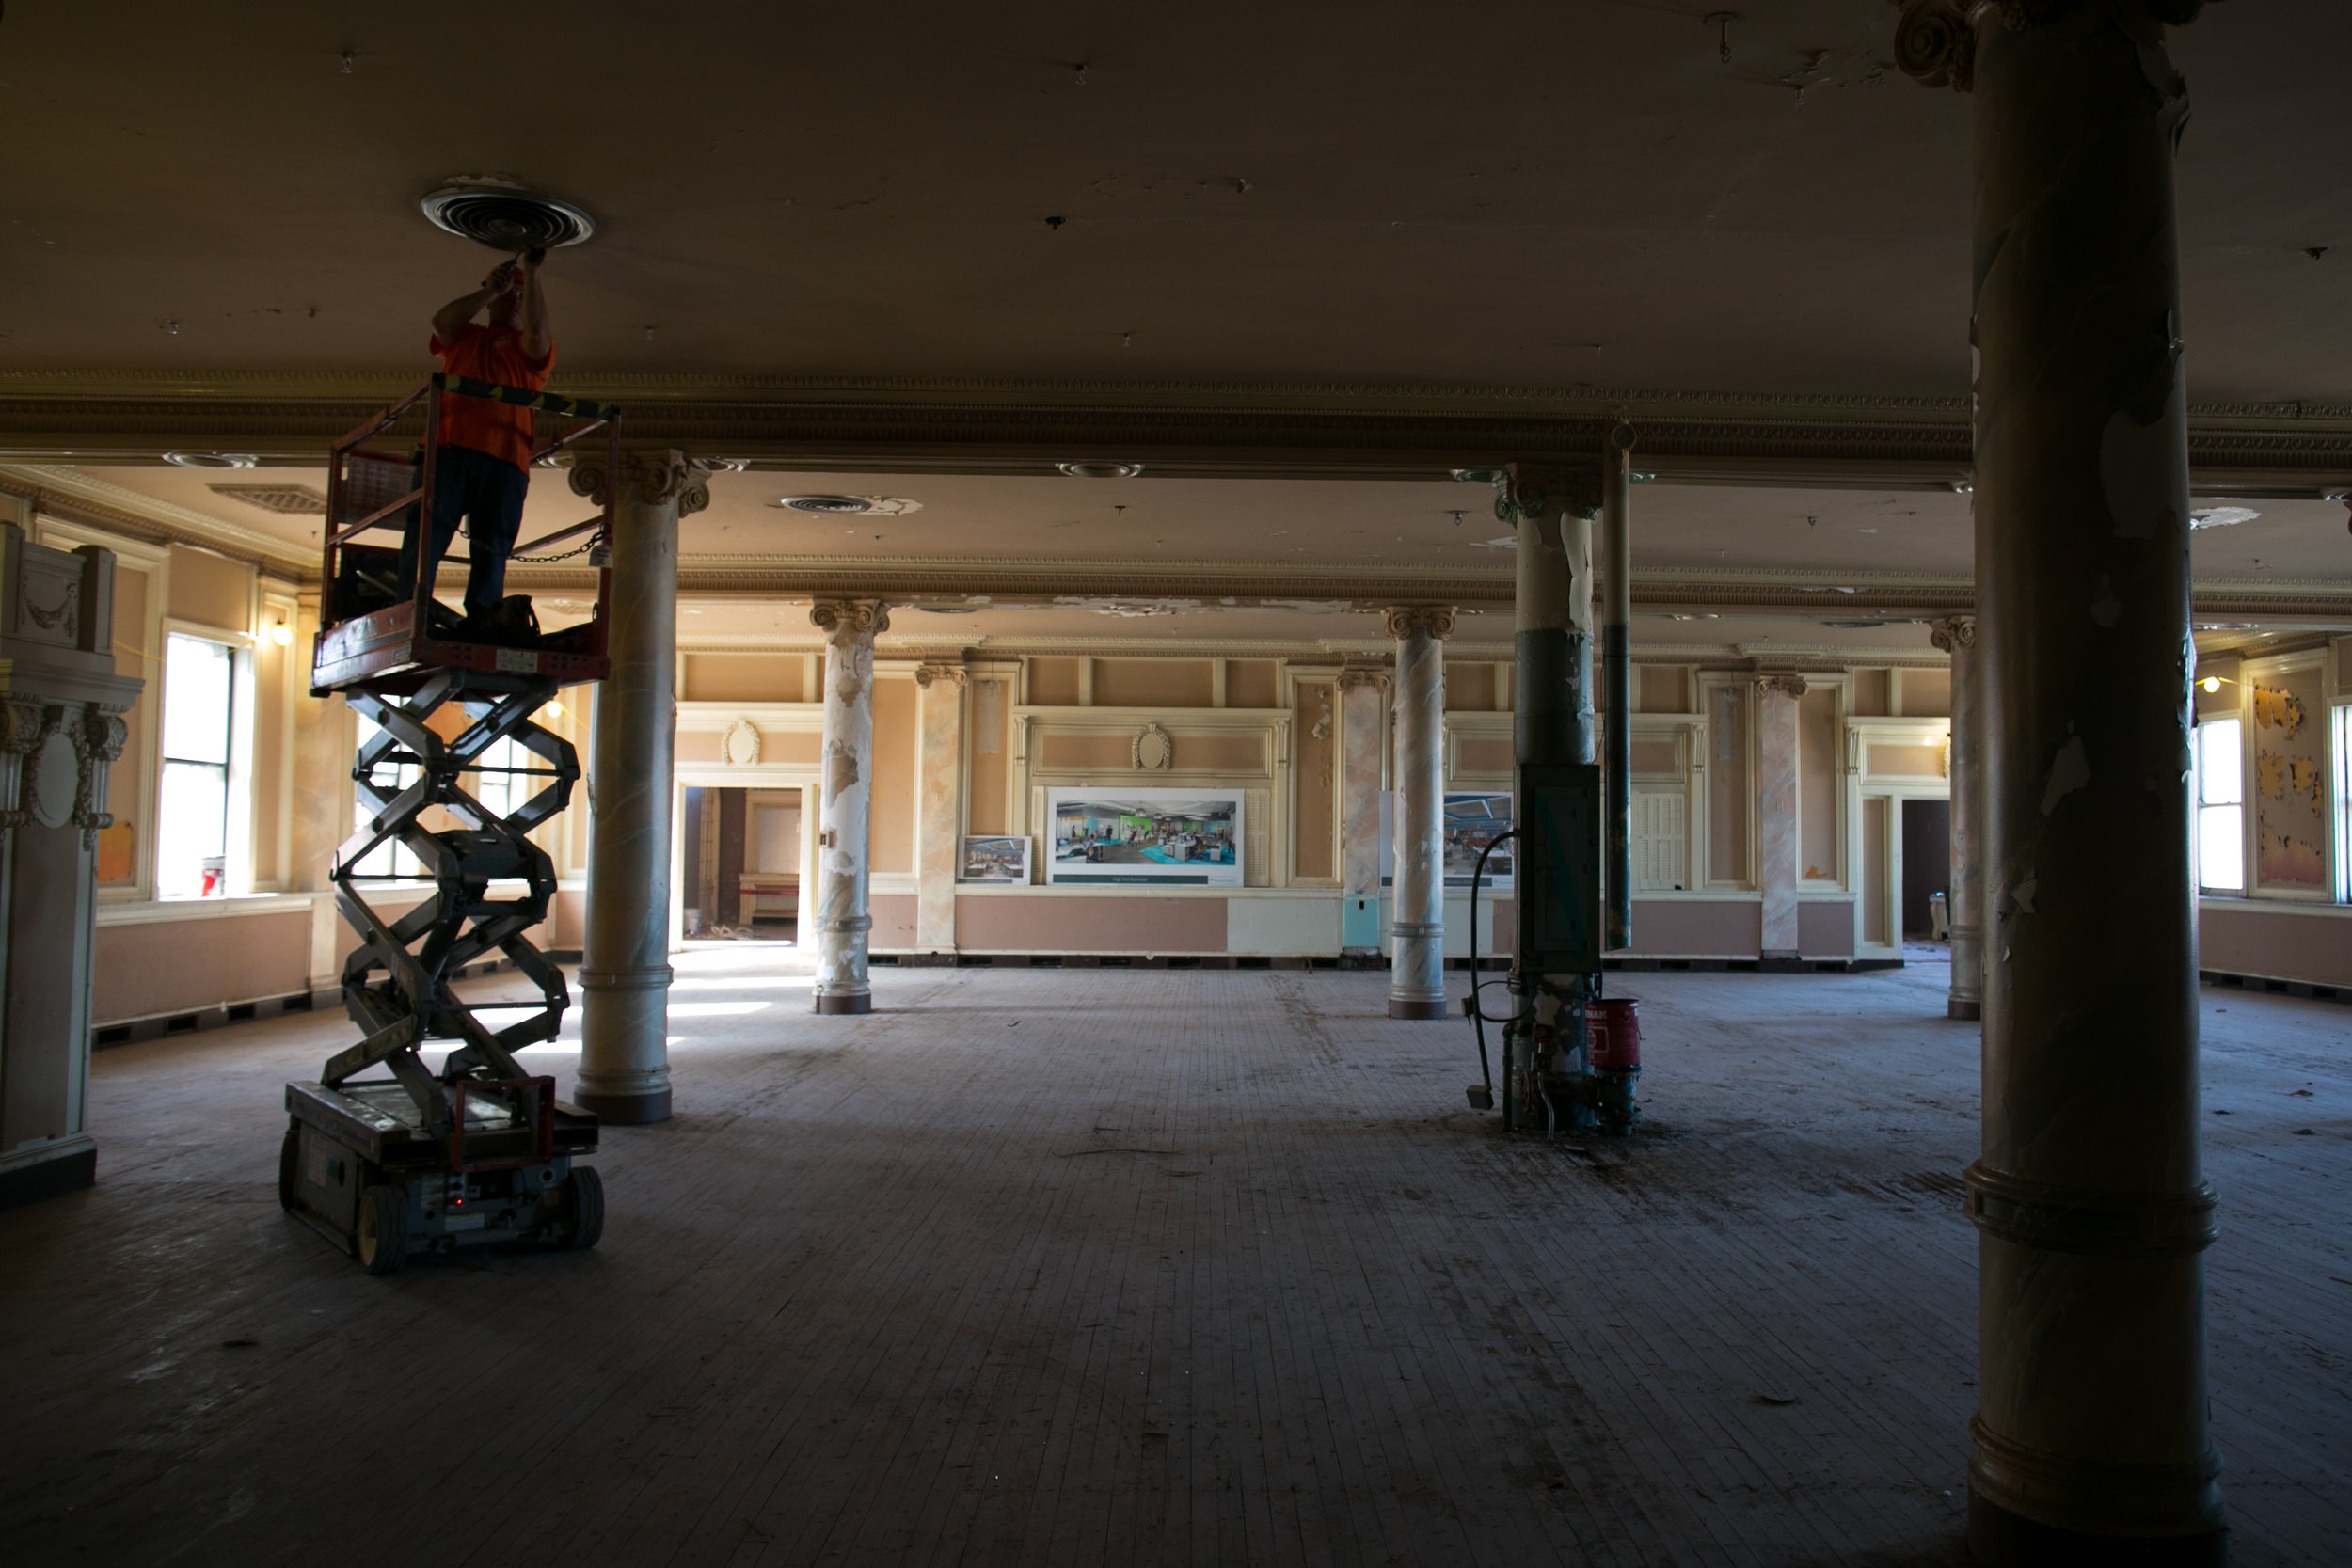 Crews work to renovate the former Tea Room restaurant at Sibley Square in Rochester, New York on Wednesday, October 5, 2016. The 1-million square foot building was home to Sibley's department store from 1906 to 1990.